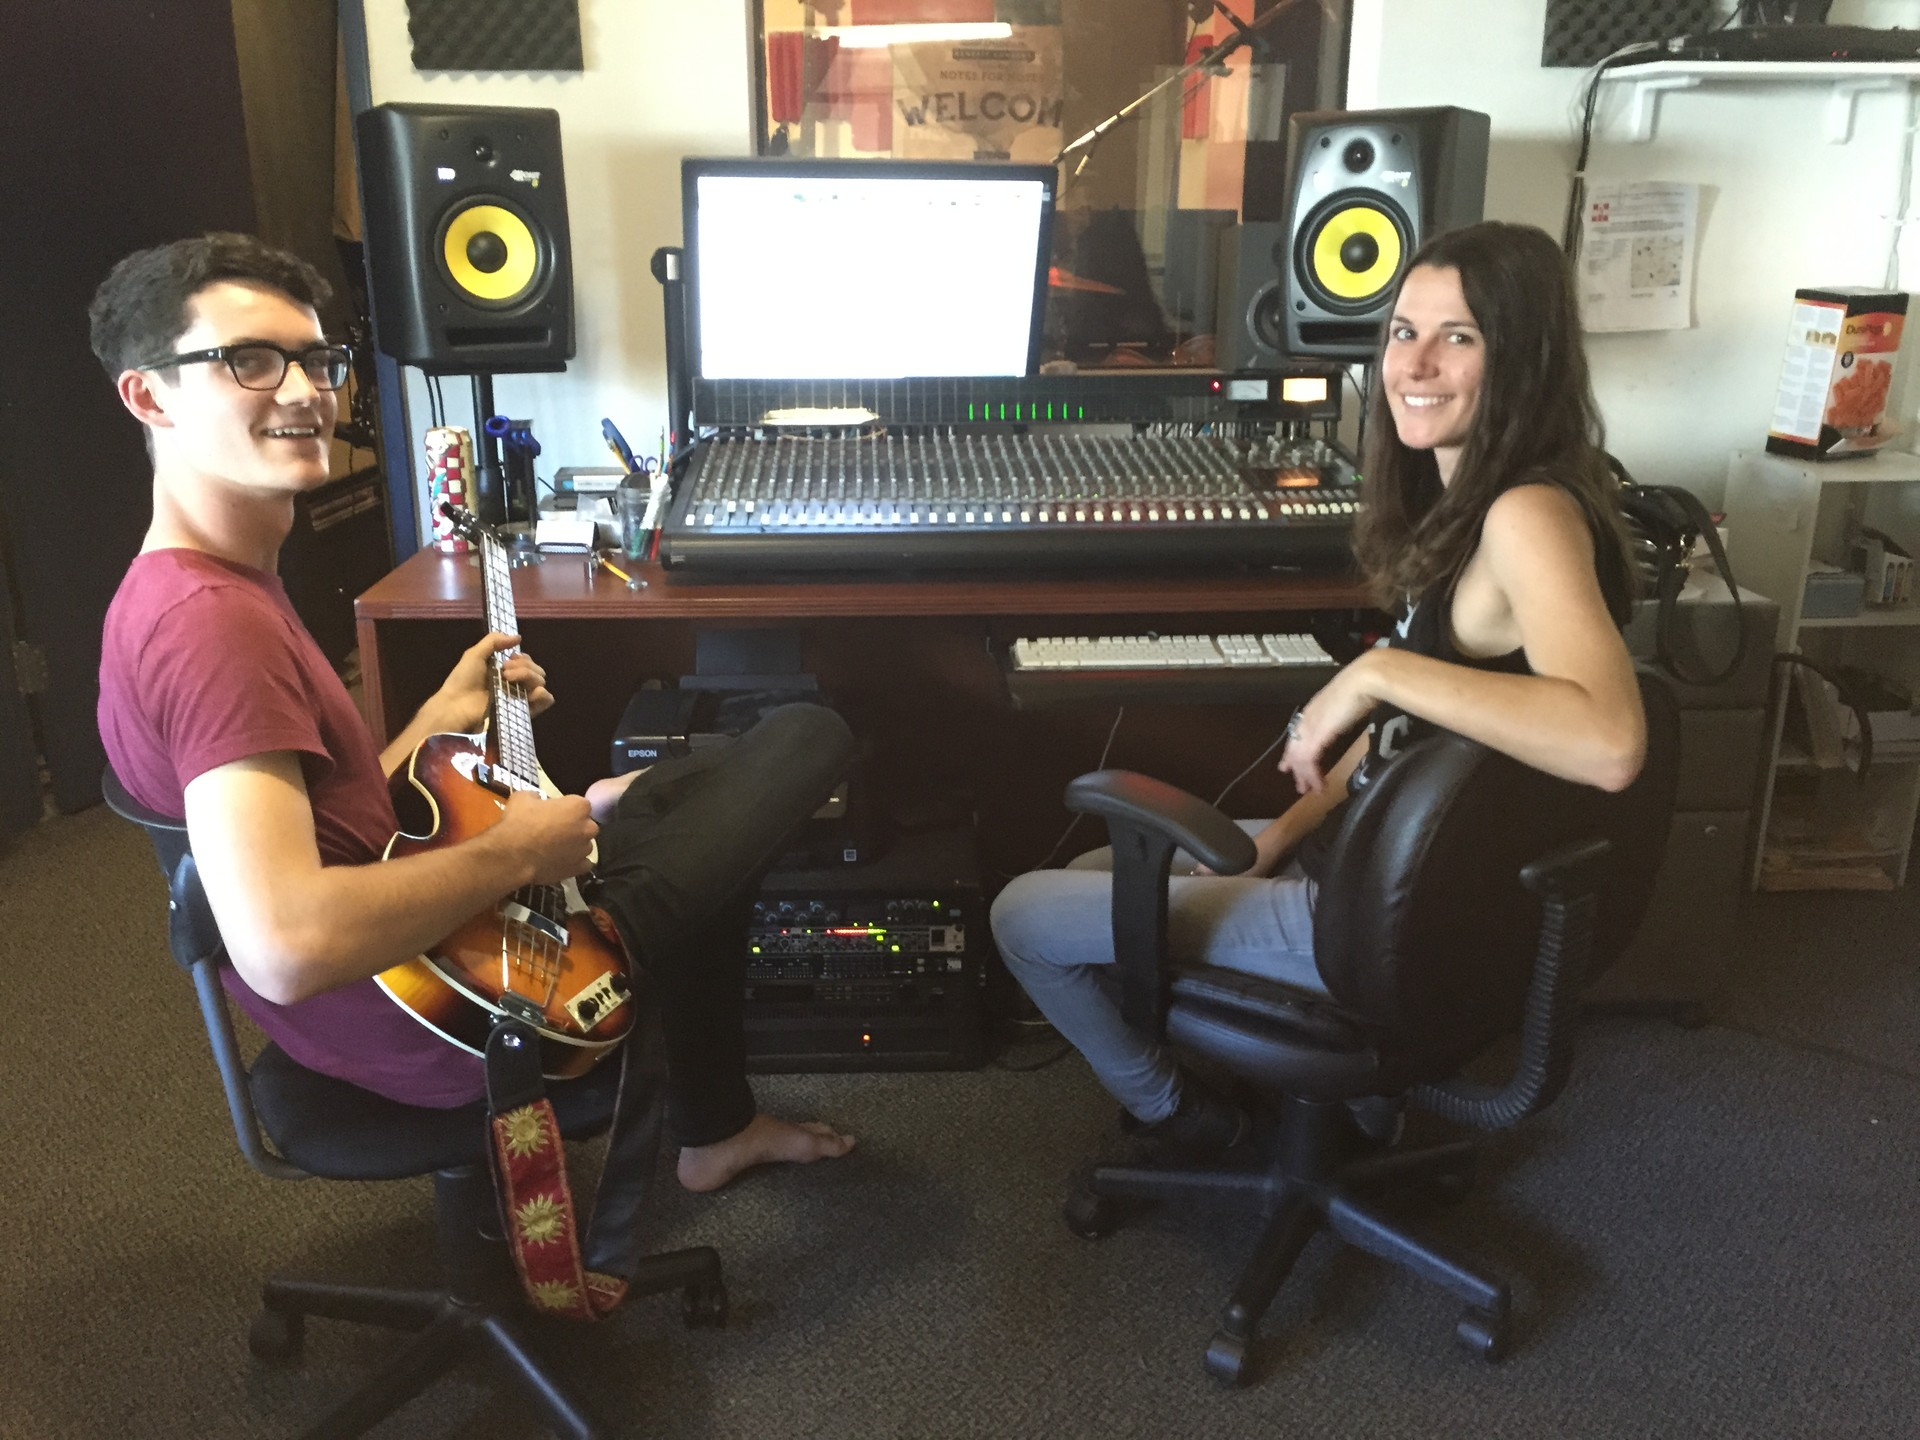 Maxton Schulte, left, and Bre Wright in the control room at Santa Barbara's Westside Notes for Notes studio.